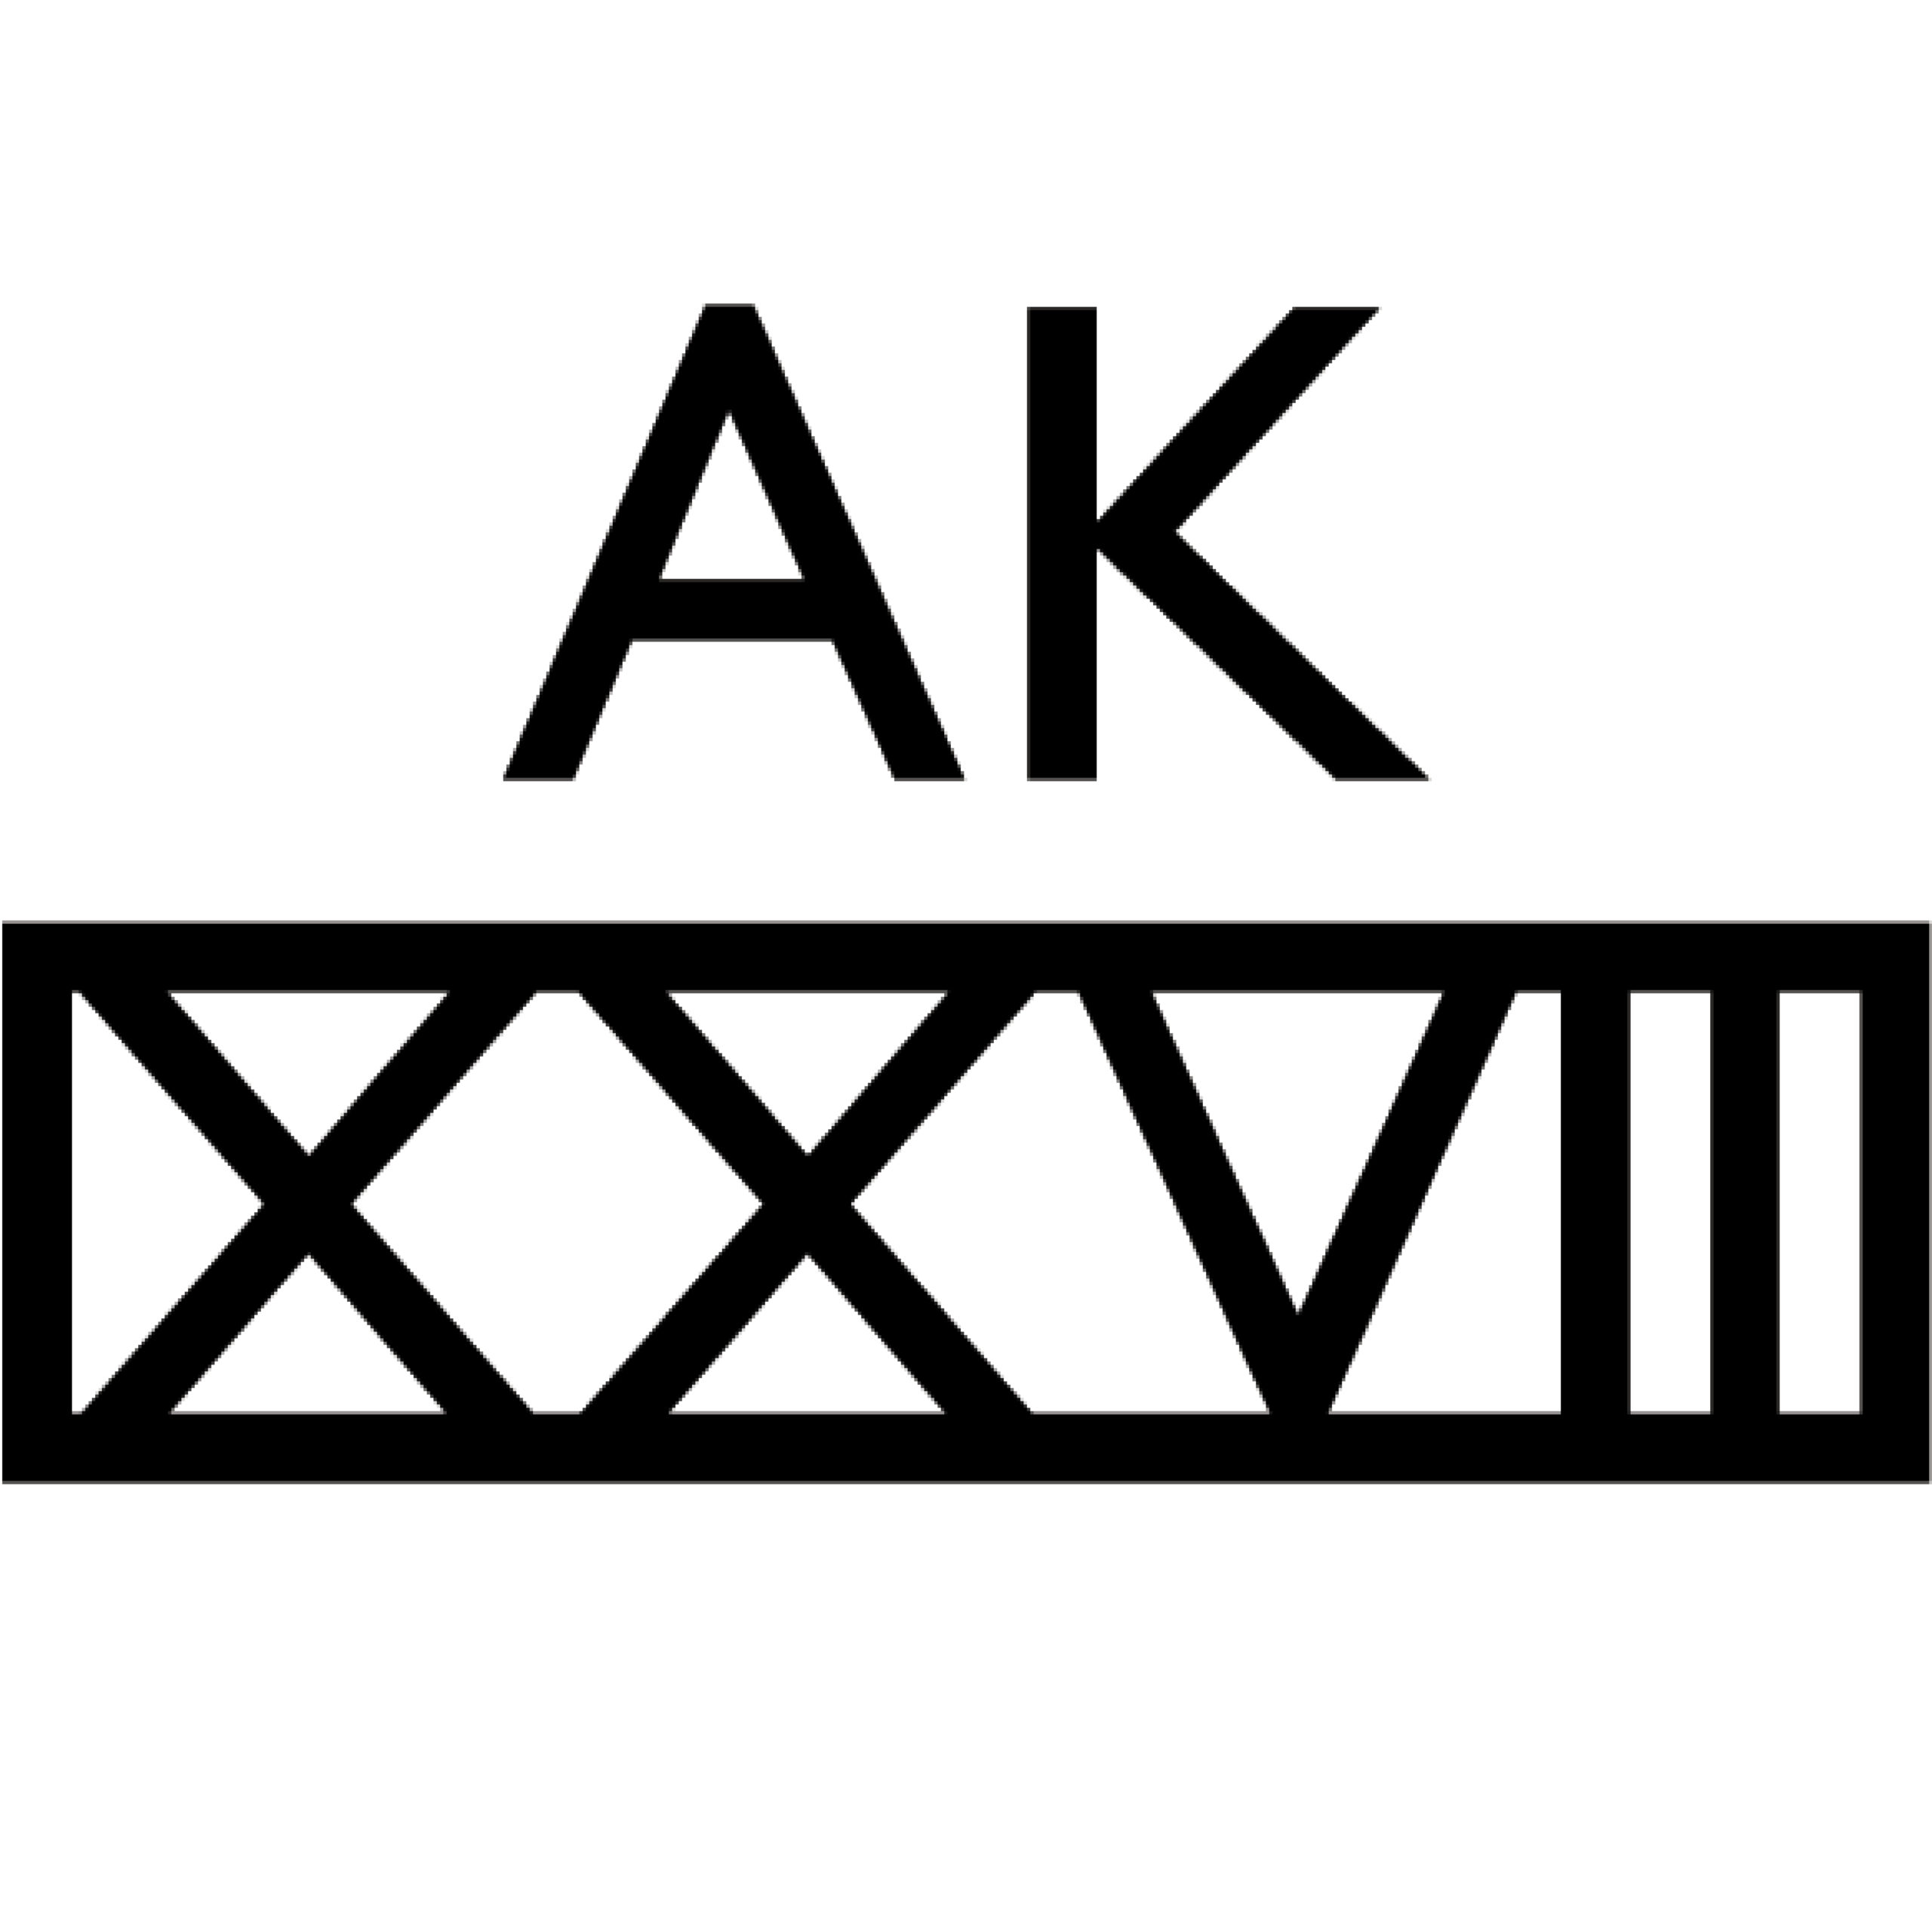 AK Twenty-Eight